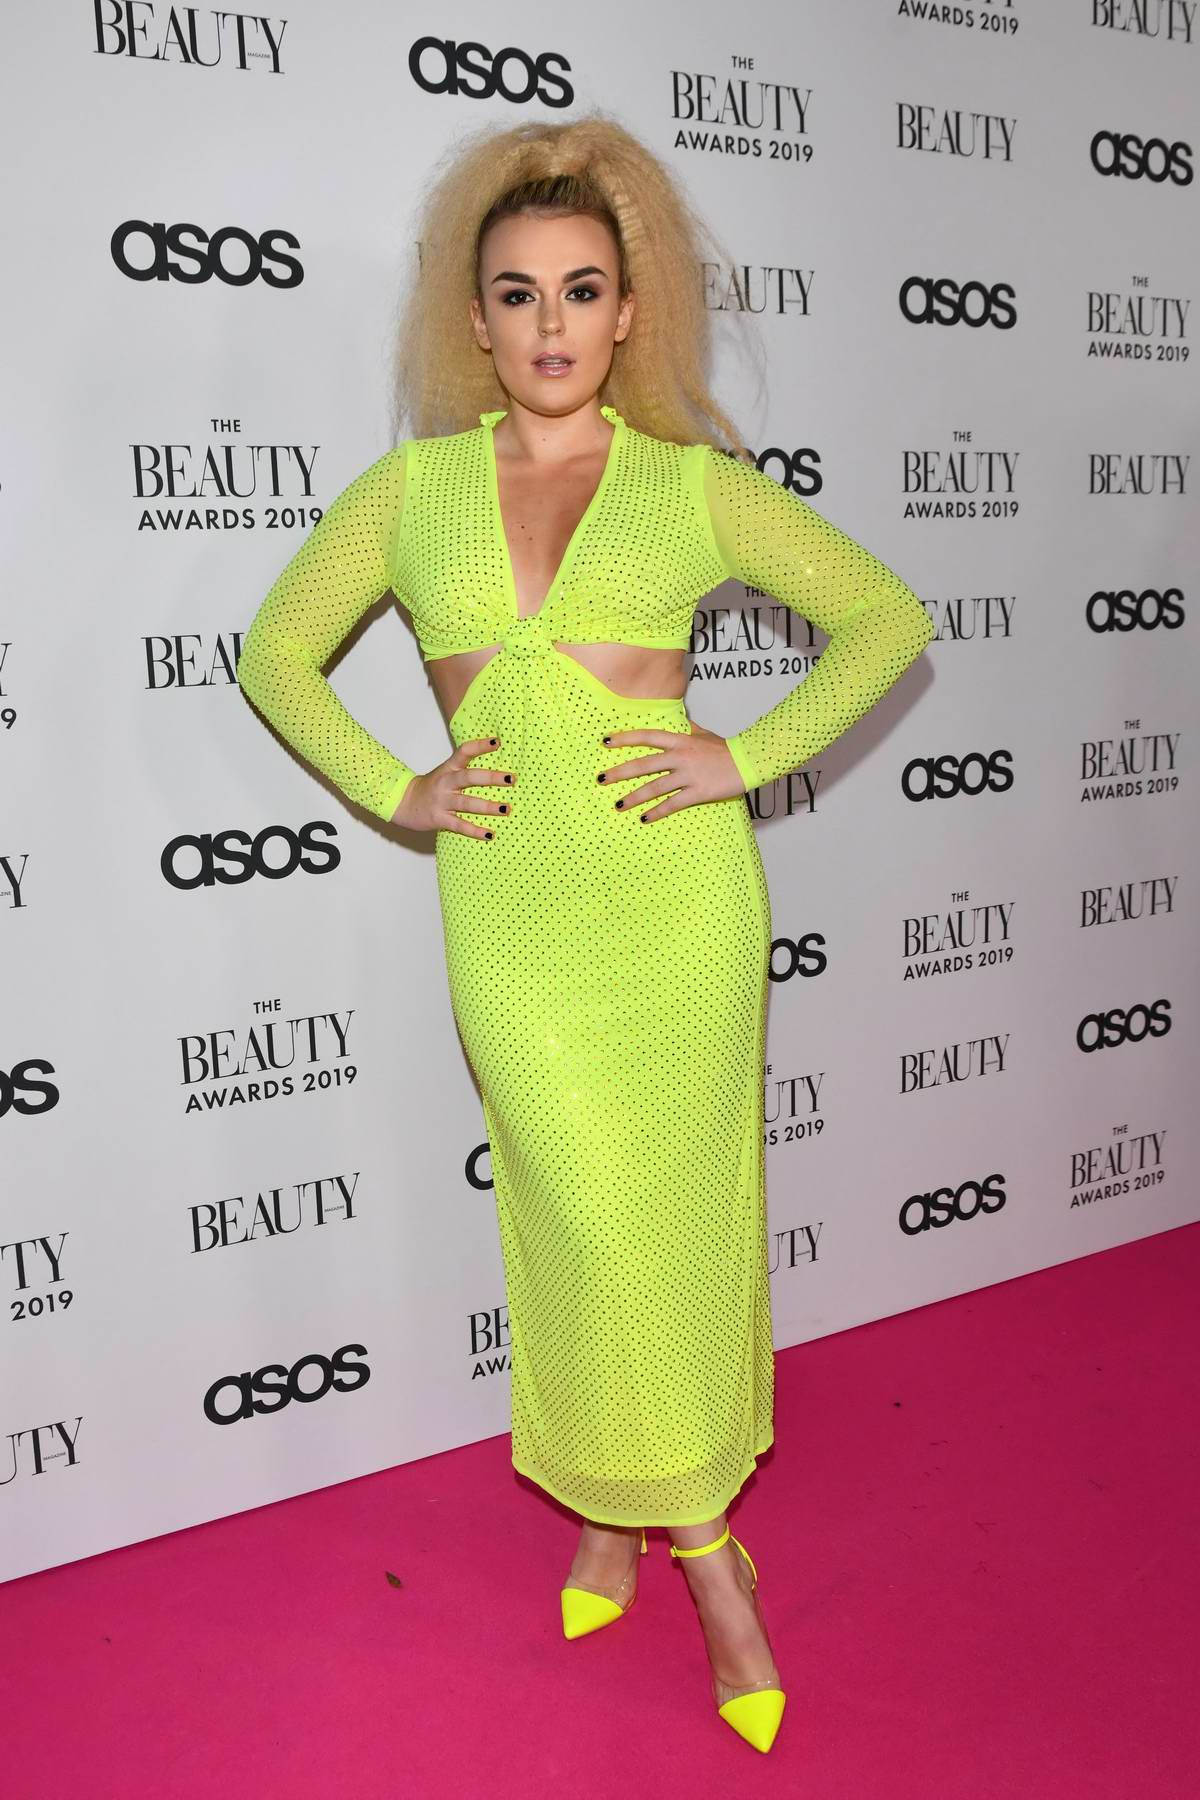 Tallia Storm attends The Beauty Awards 2019 with ASOS at City Central in London, UK